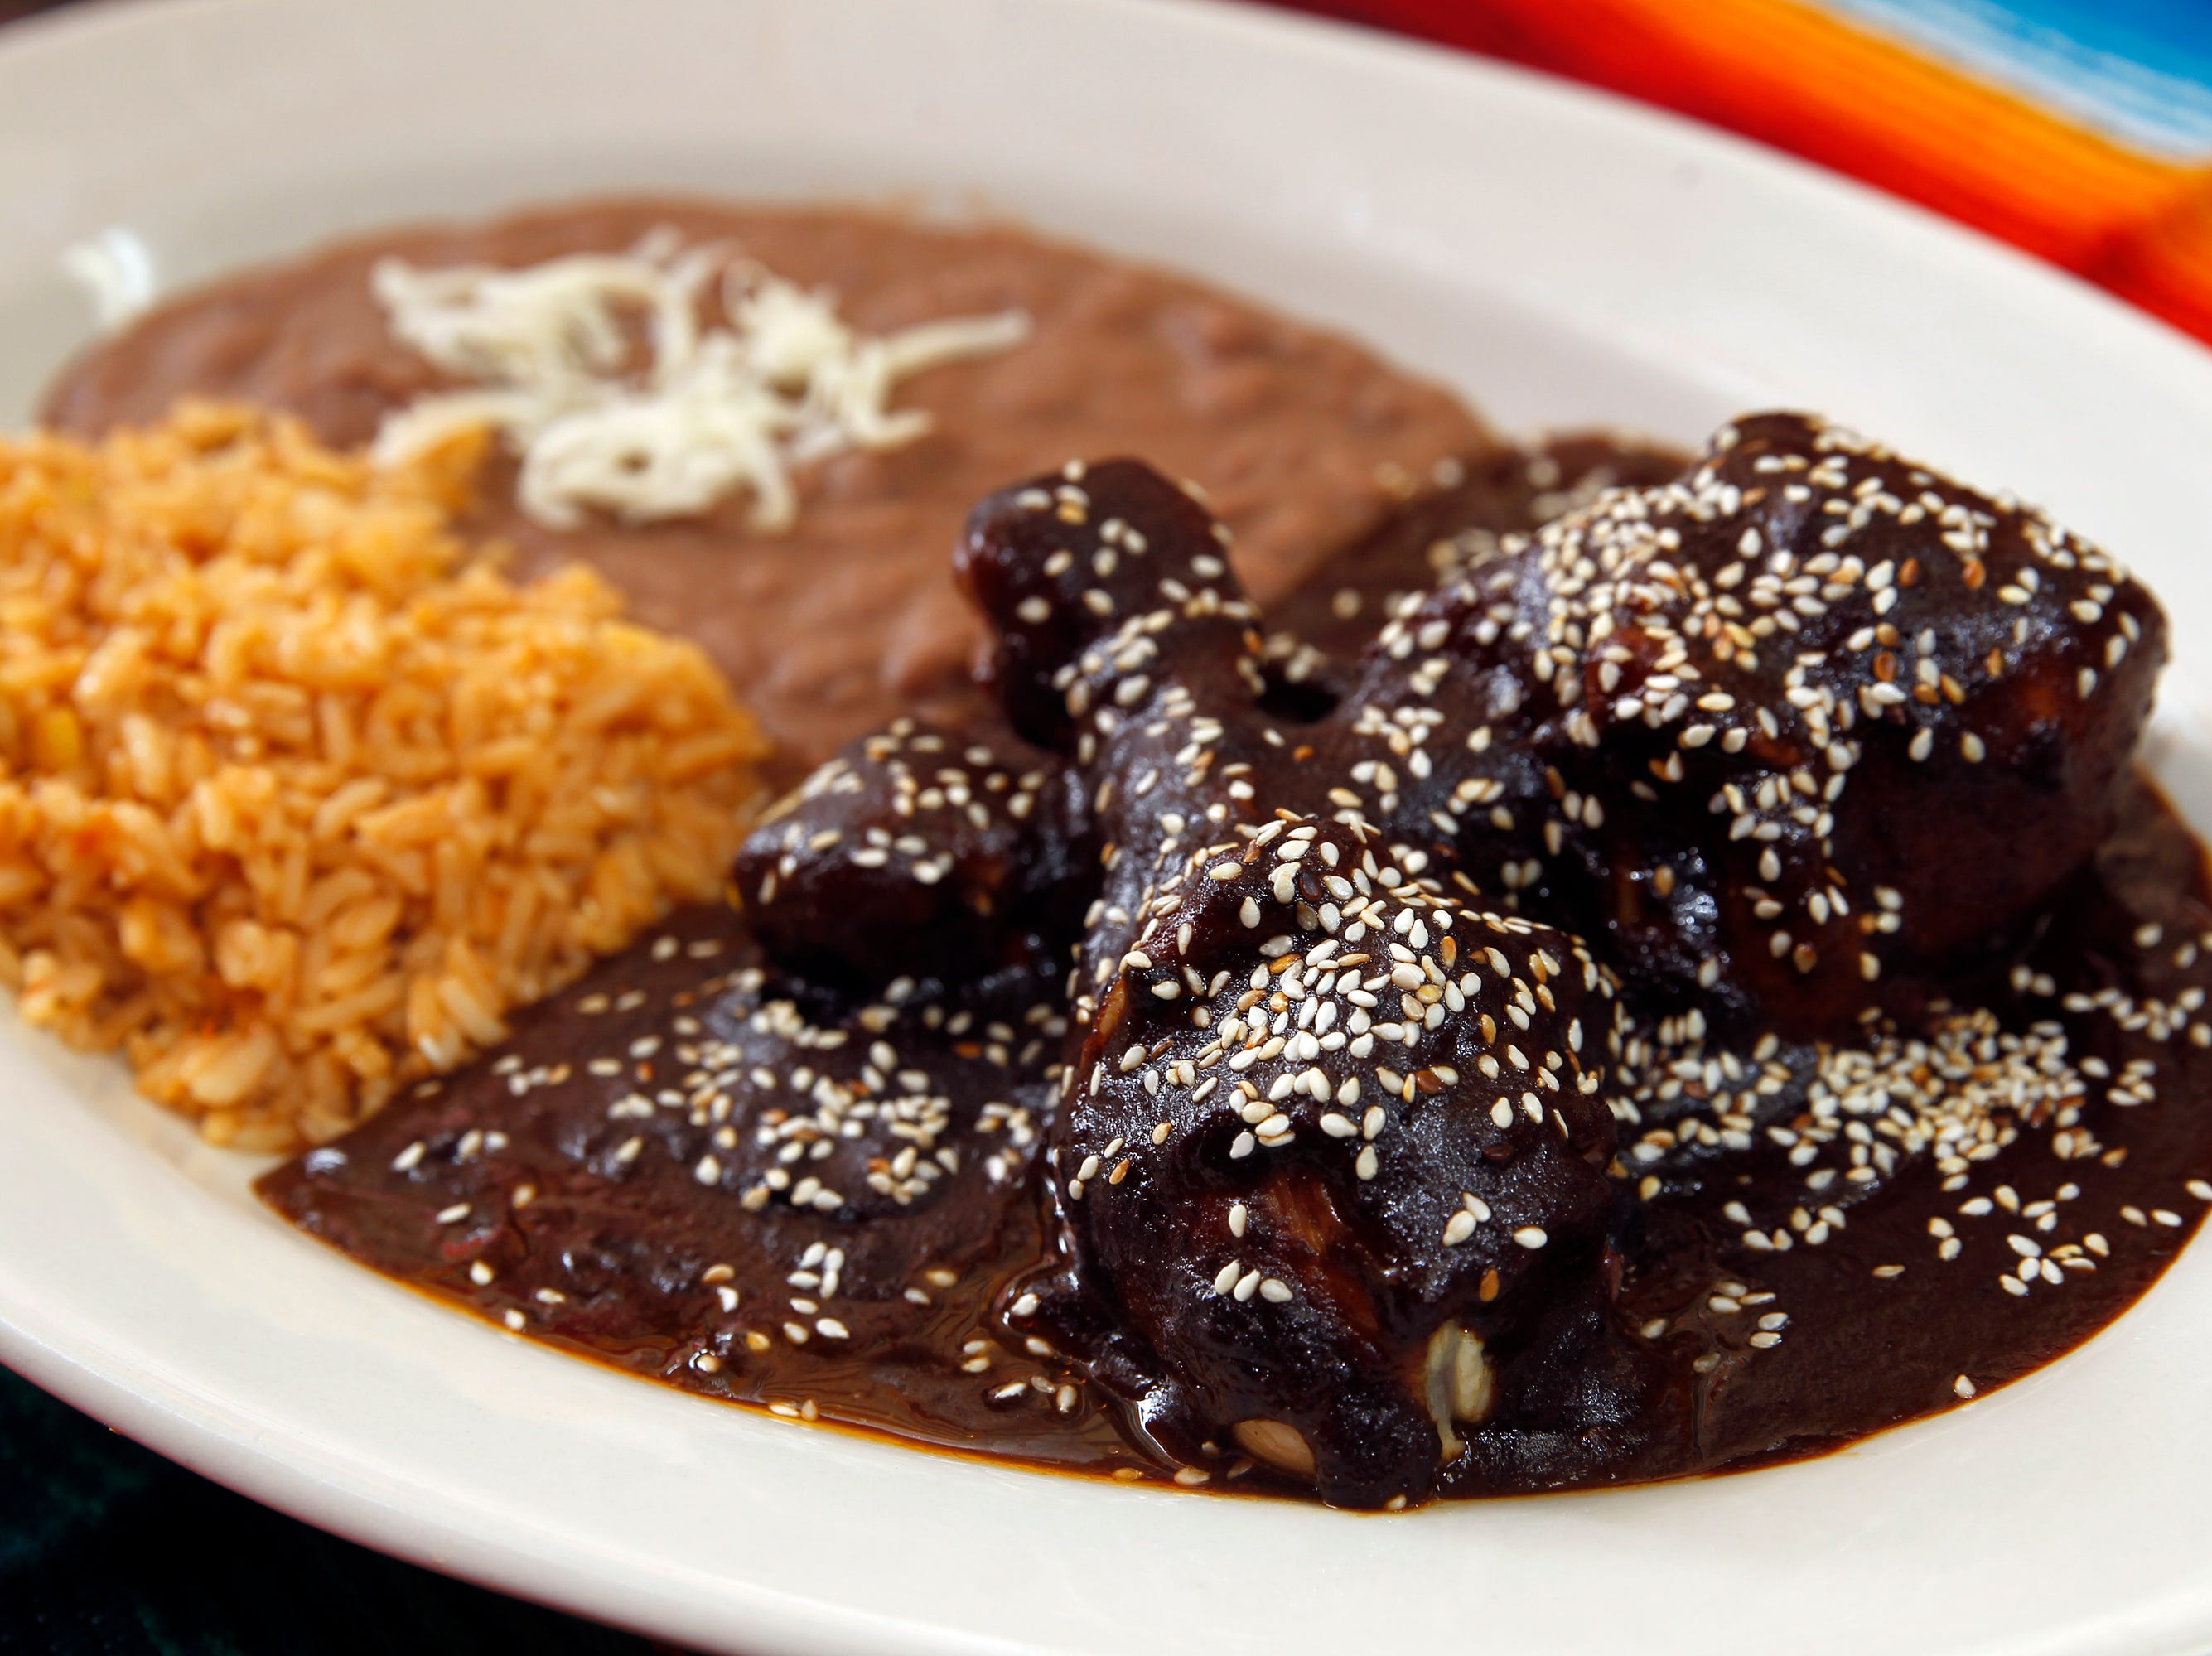 The Mole Poblano (chicken) from El Tlaxcalteca with rice and beans.